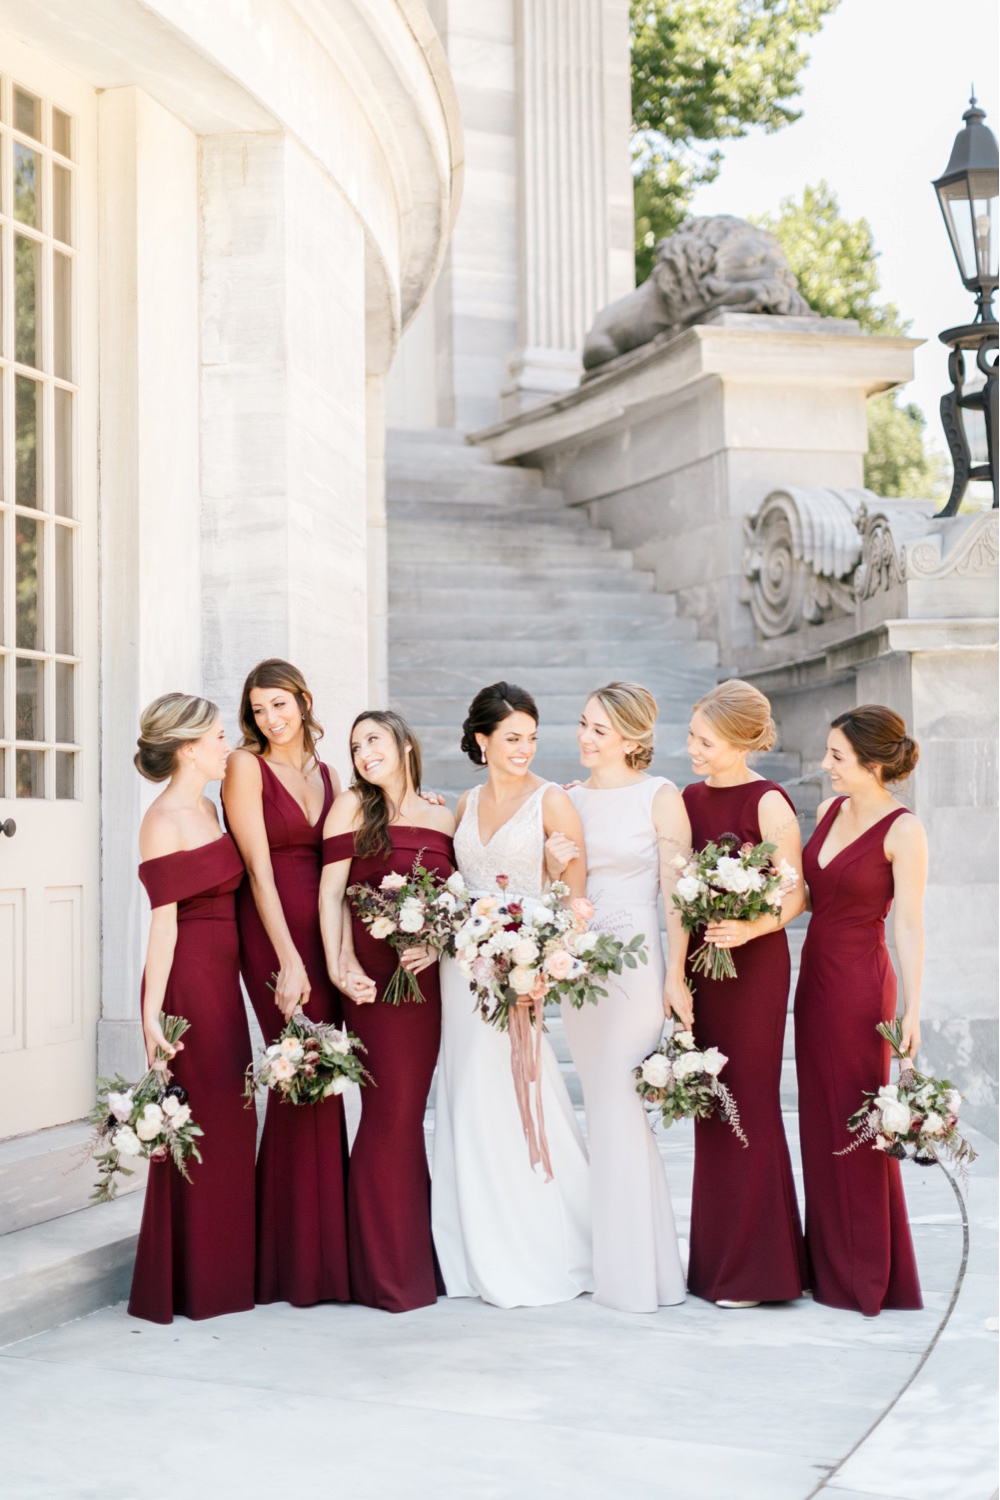 055 Burgandy Bridesmaid Dress Philadelphia Wedding Burgaundy Wedding